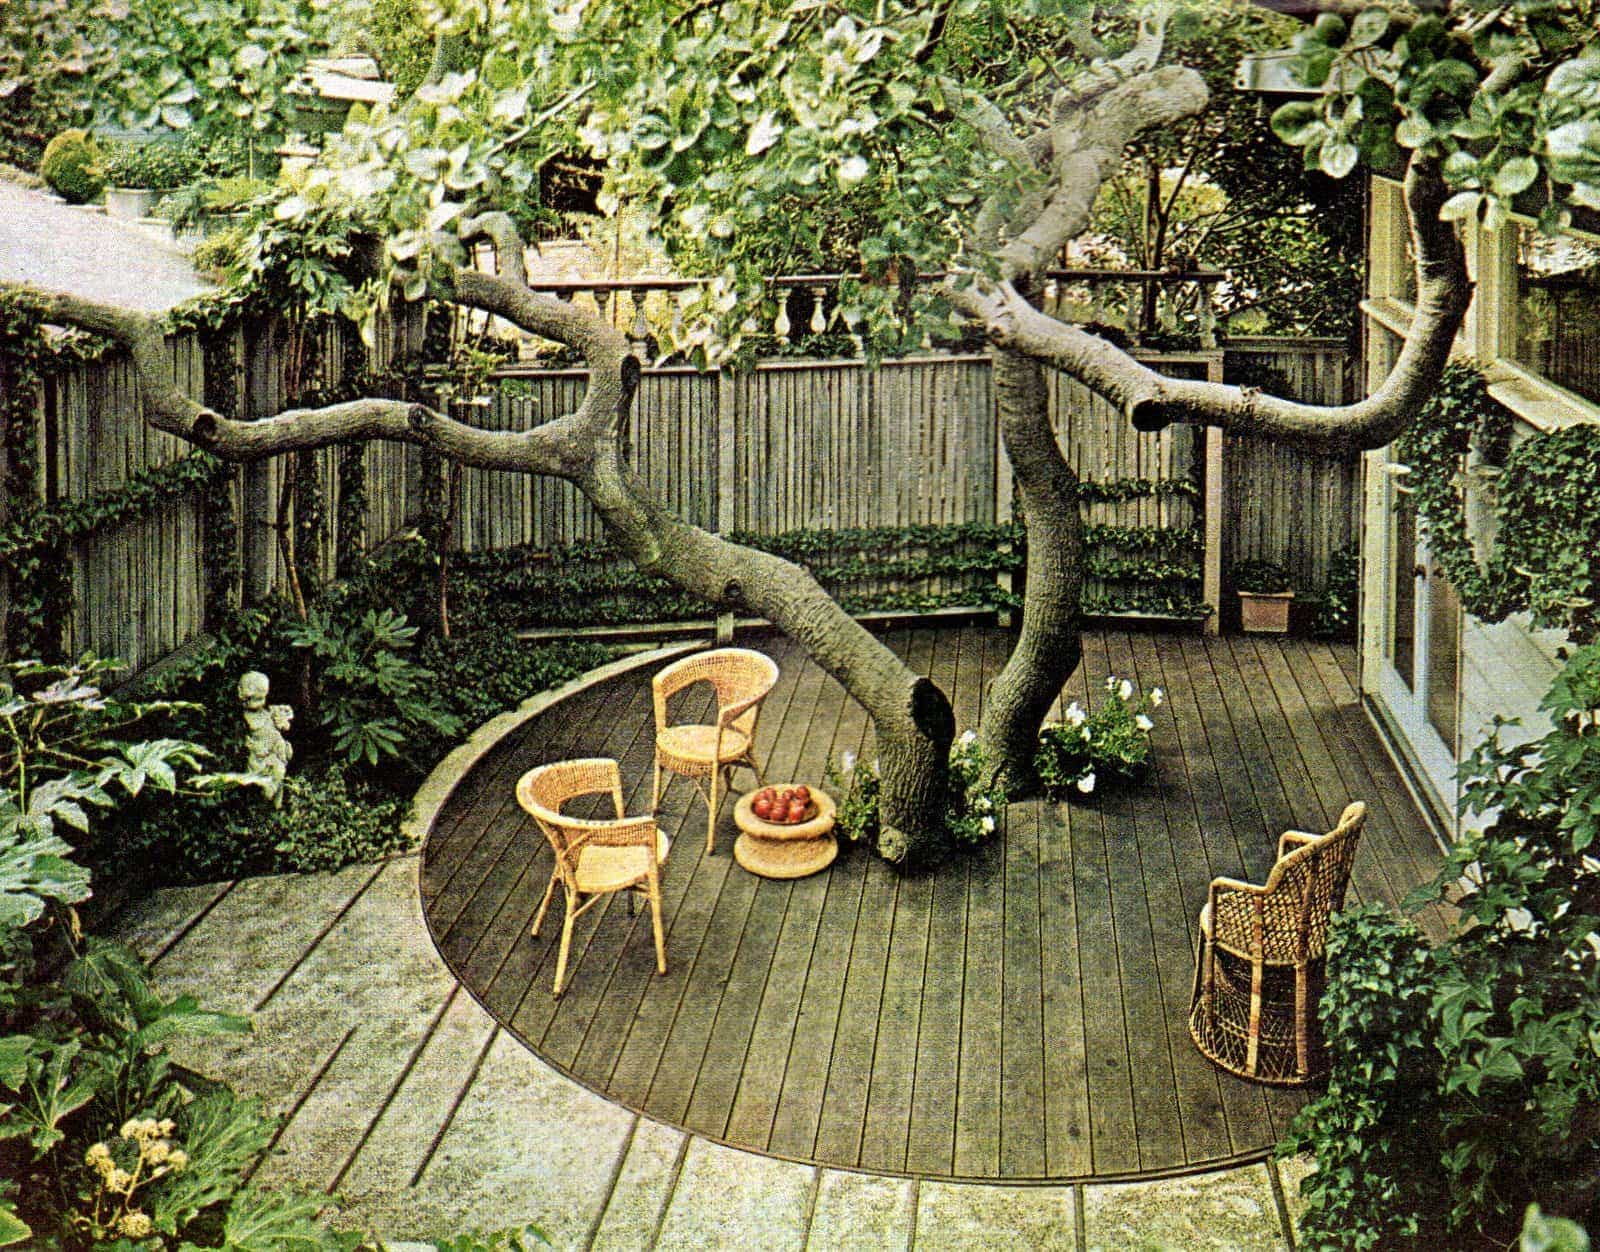 Small backyard with private deck built around a tree - Vintage landscaping from 1966